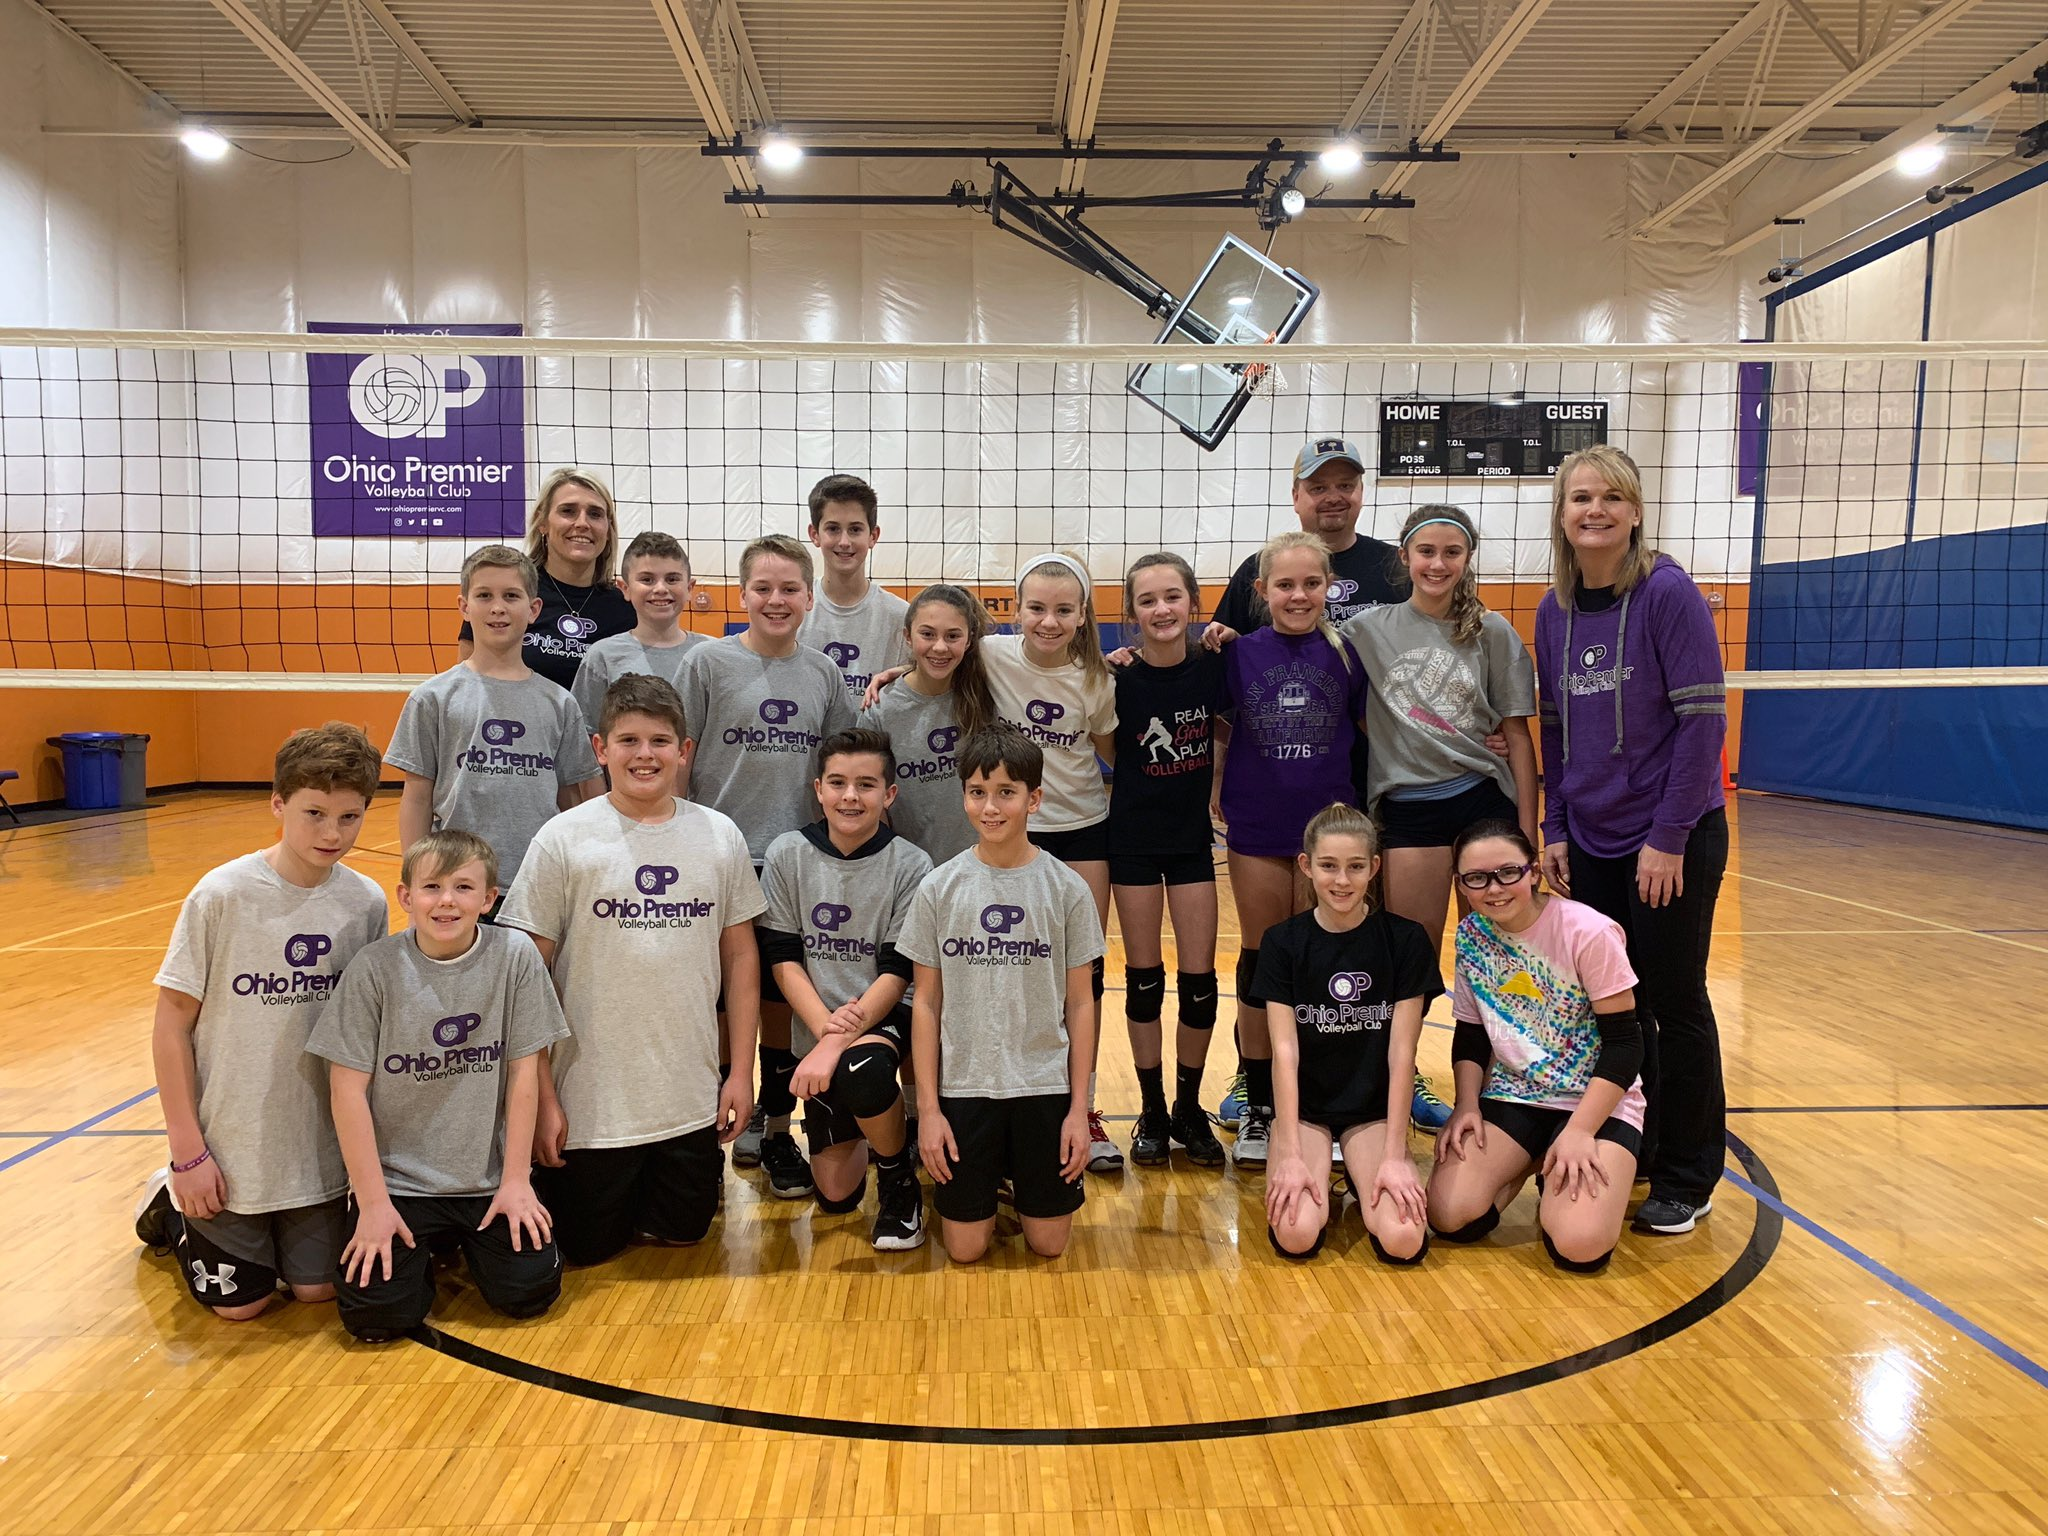 Ohio Premier Vc On Twitter Our Girls 12 1 Team Had A Chance To Scrimmage Our Boys 12u Team Playvolleyball Cincinnati